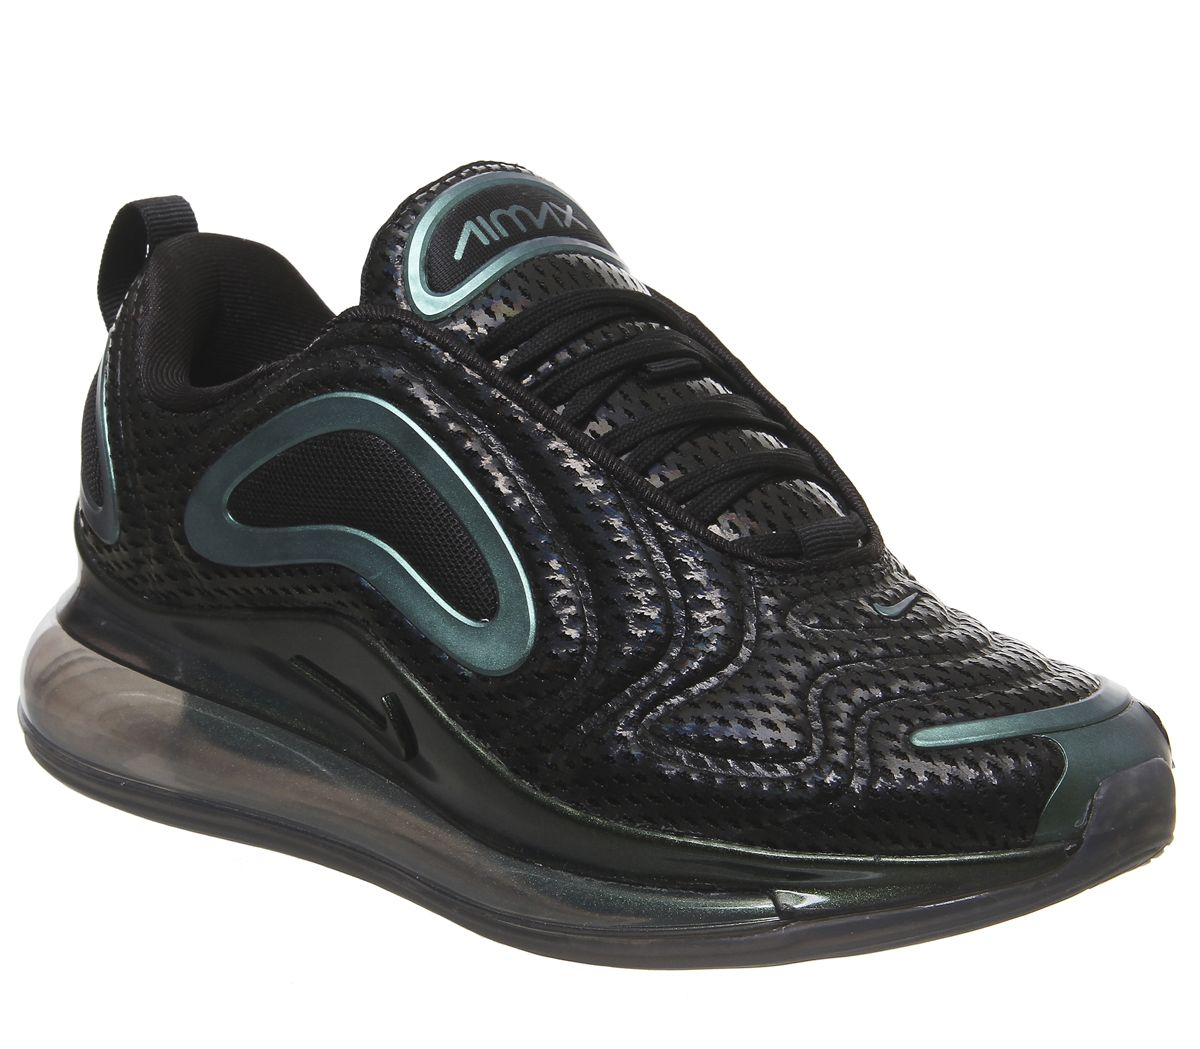 74d08b7891 Nike Air Max 720 Trainers Black Laser Fuschia Anthracite F - Hers ...